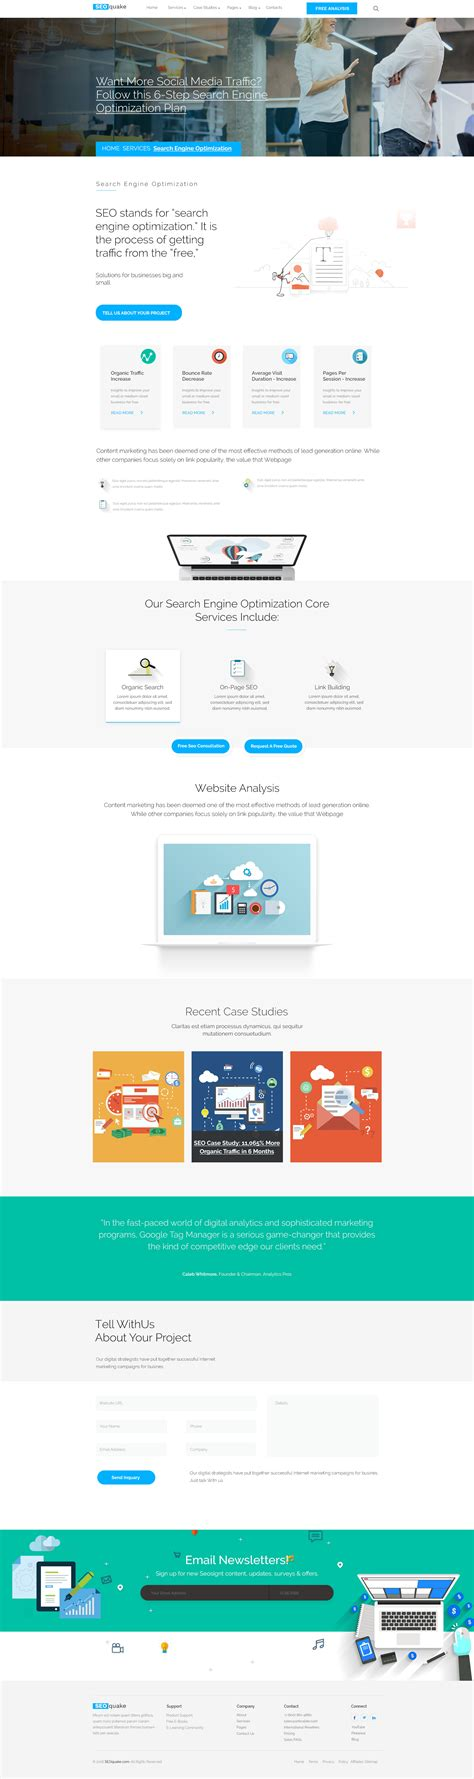 search engine optimization agency seo quake seo digital marketing agency psd template